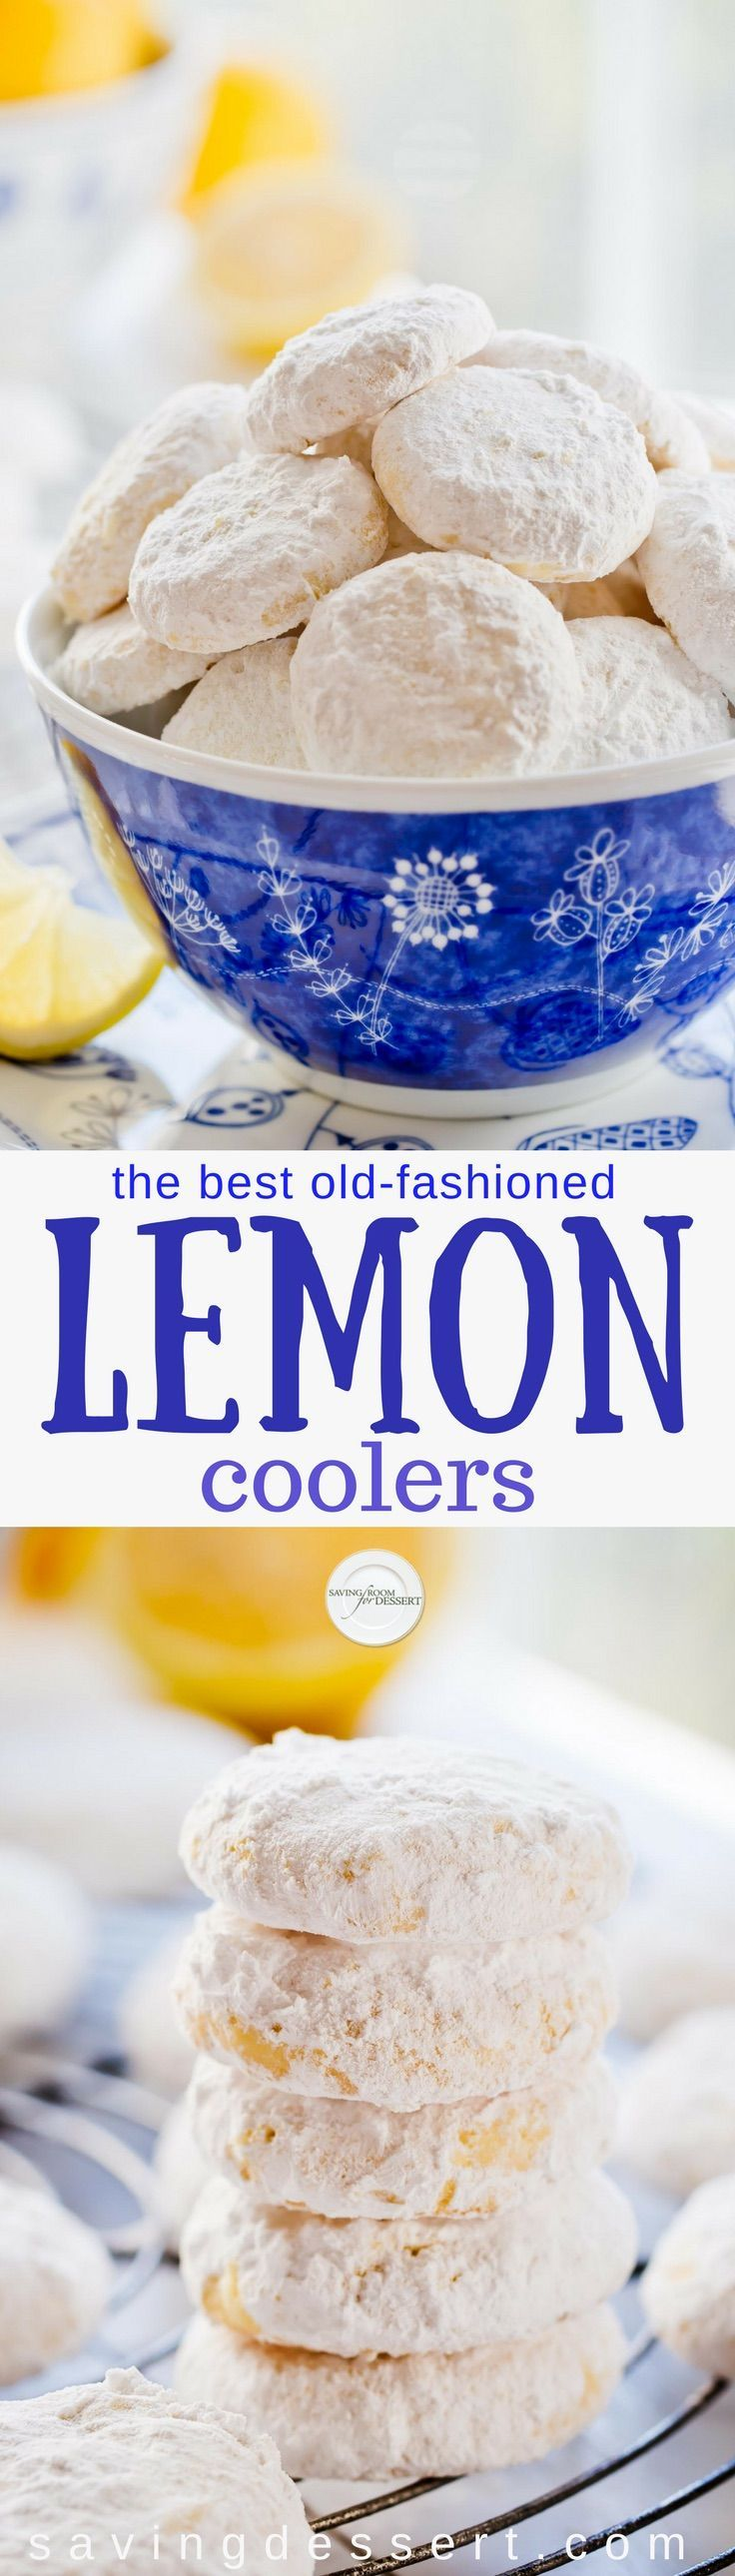 Lemon Coolers - hot from the oven, these melt-in-your mouth cookies are tossed in a mixture of crystallized lemon and powdered sugar for the most incredible intense lemon flavor ever! #savingroomfordessert #lemon #lemoncookies #lemoncoolers #cookies #baki